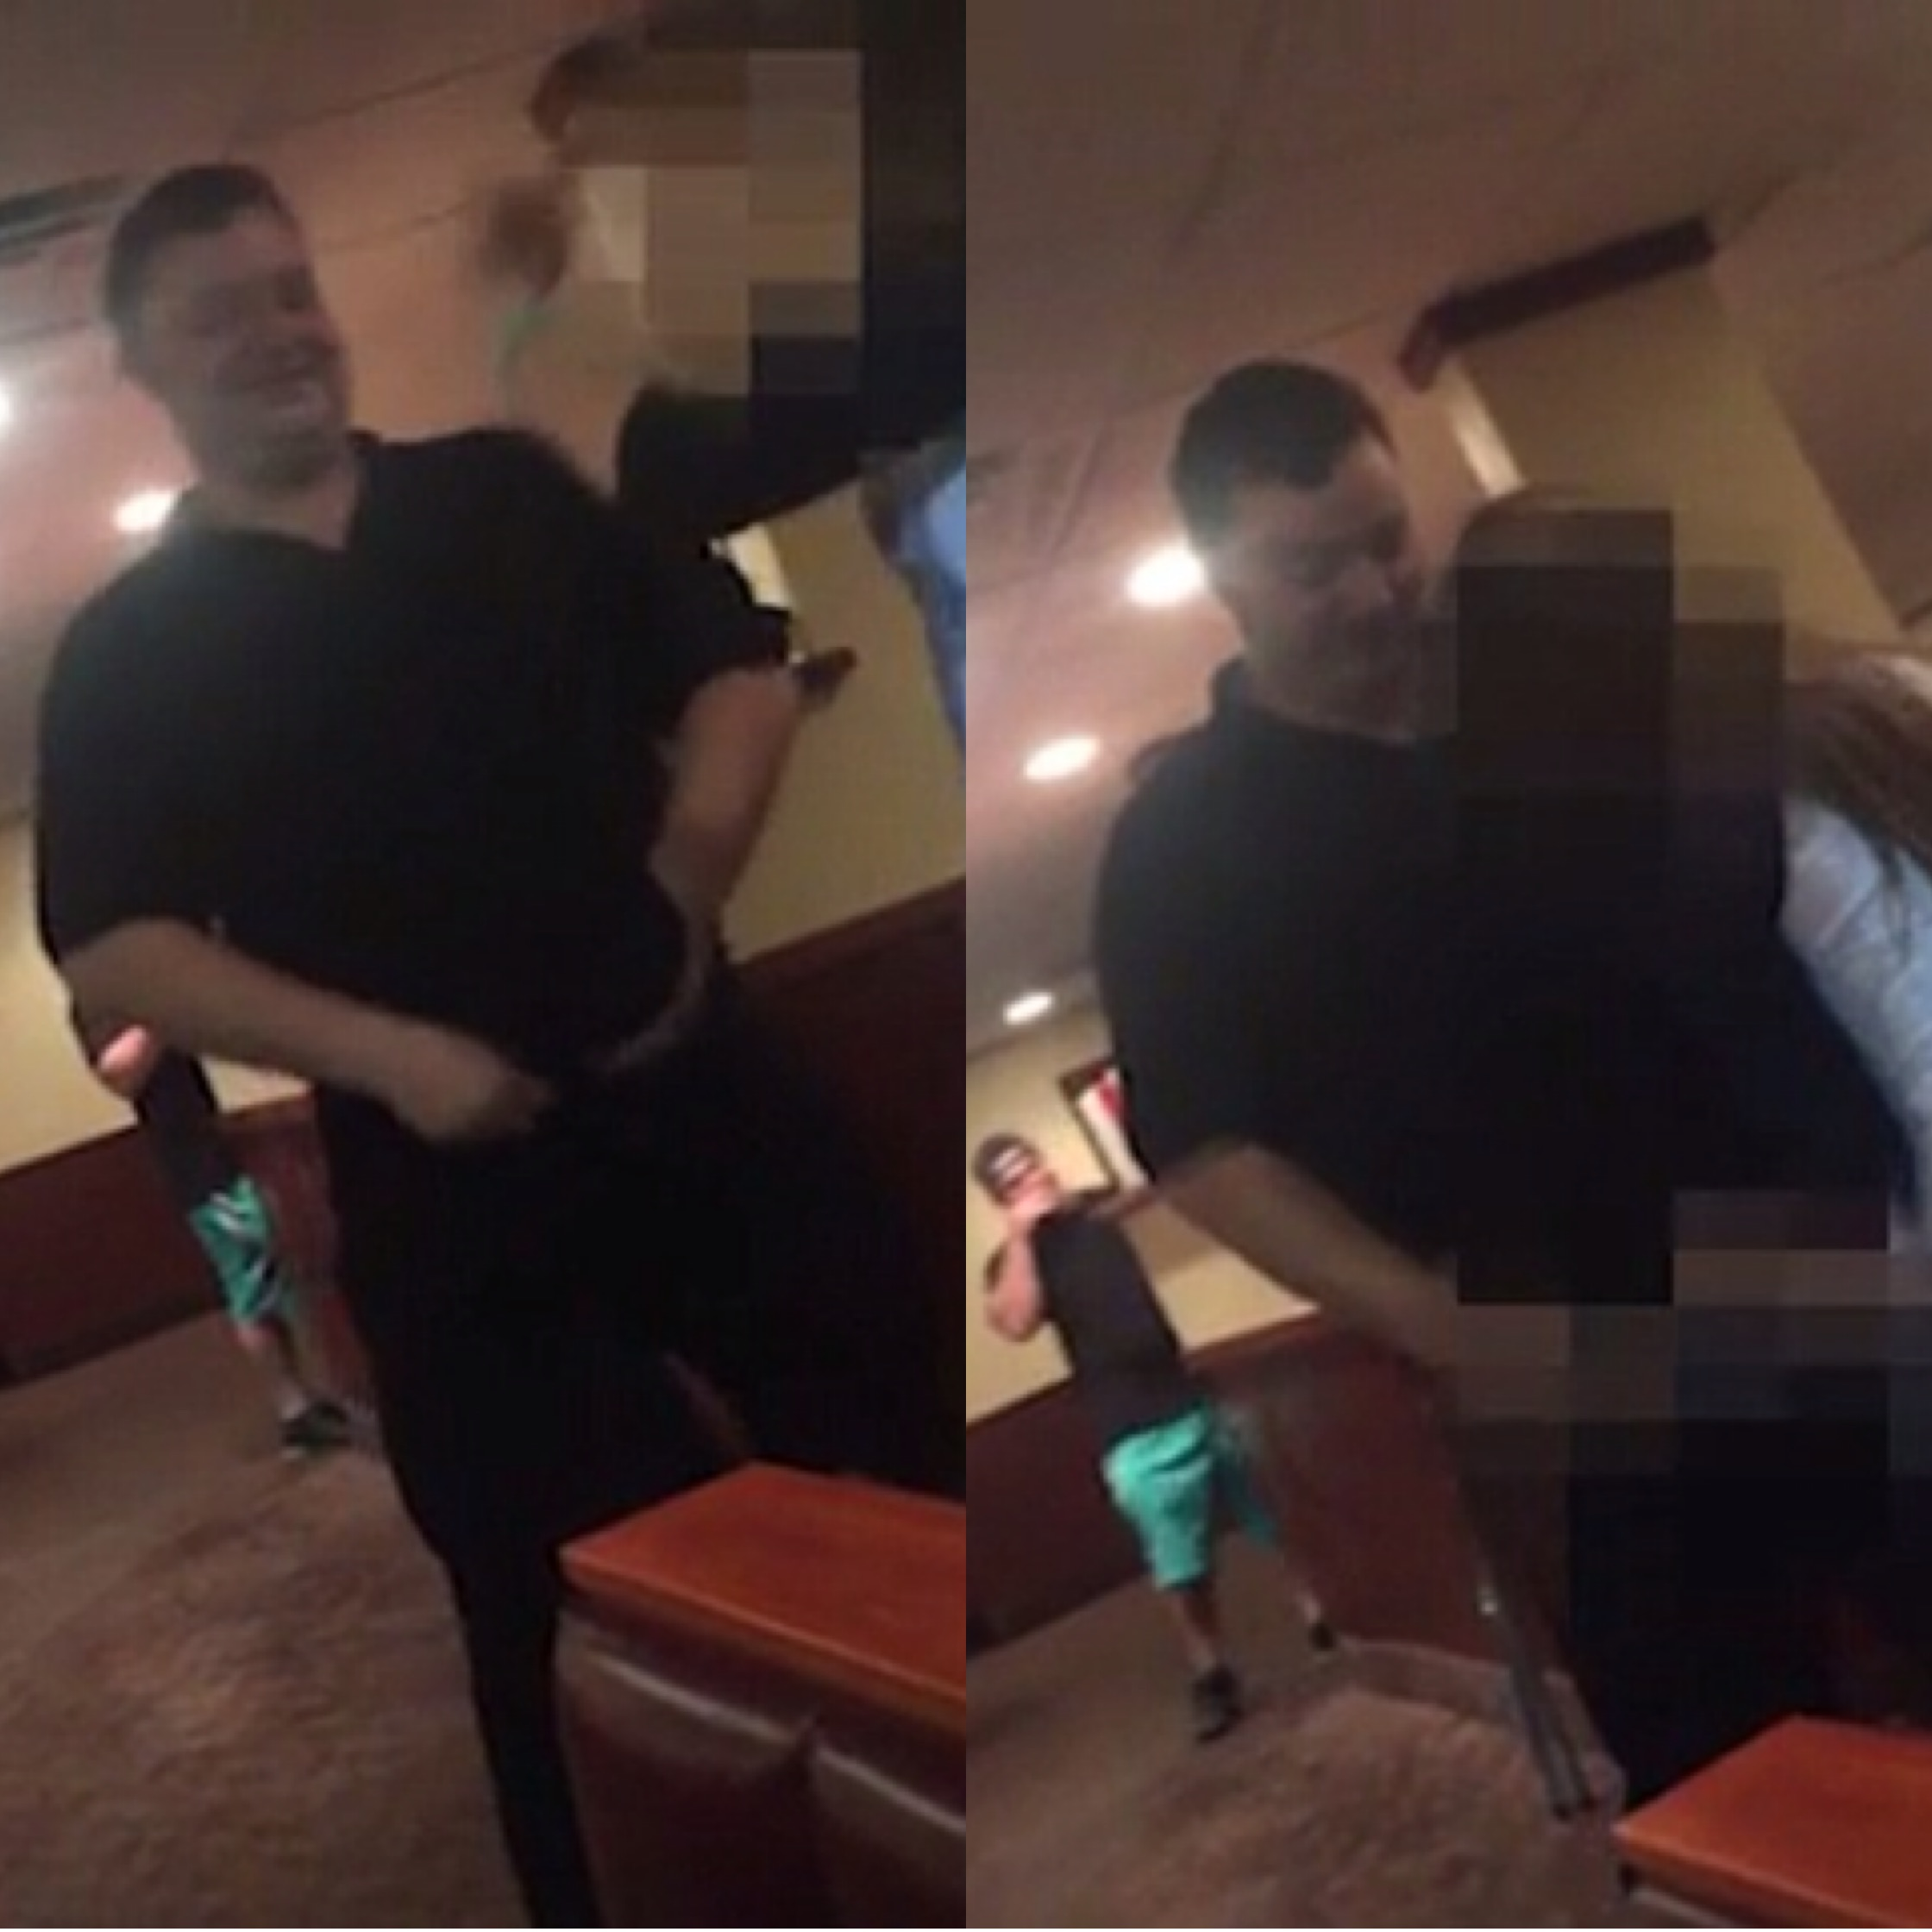 customer caught giving denny s server a blow job as a tip wait how many more videos do they have from that night did they go around a bunch of random restaurants offering blow jobs